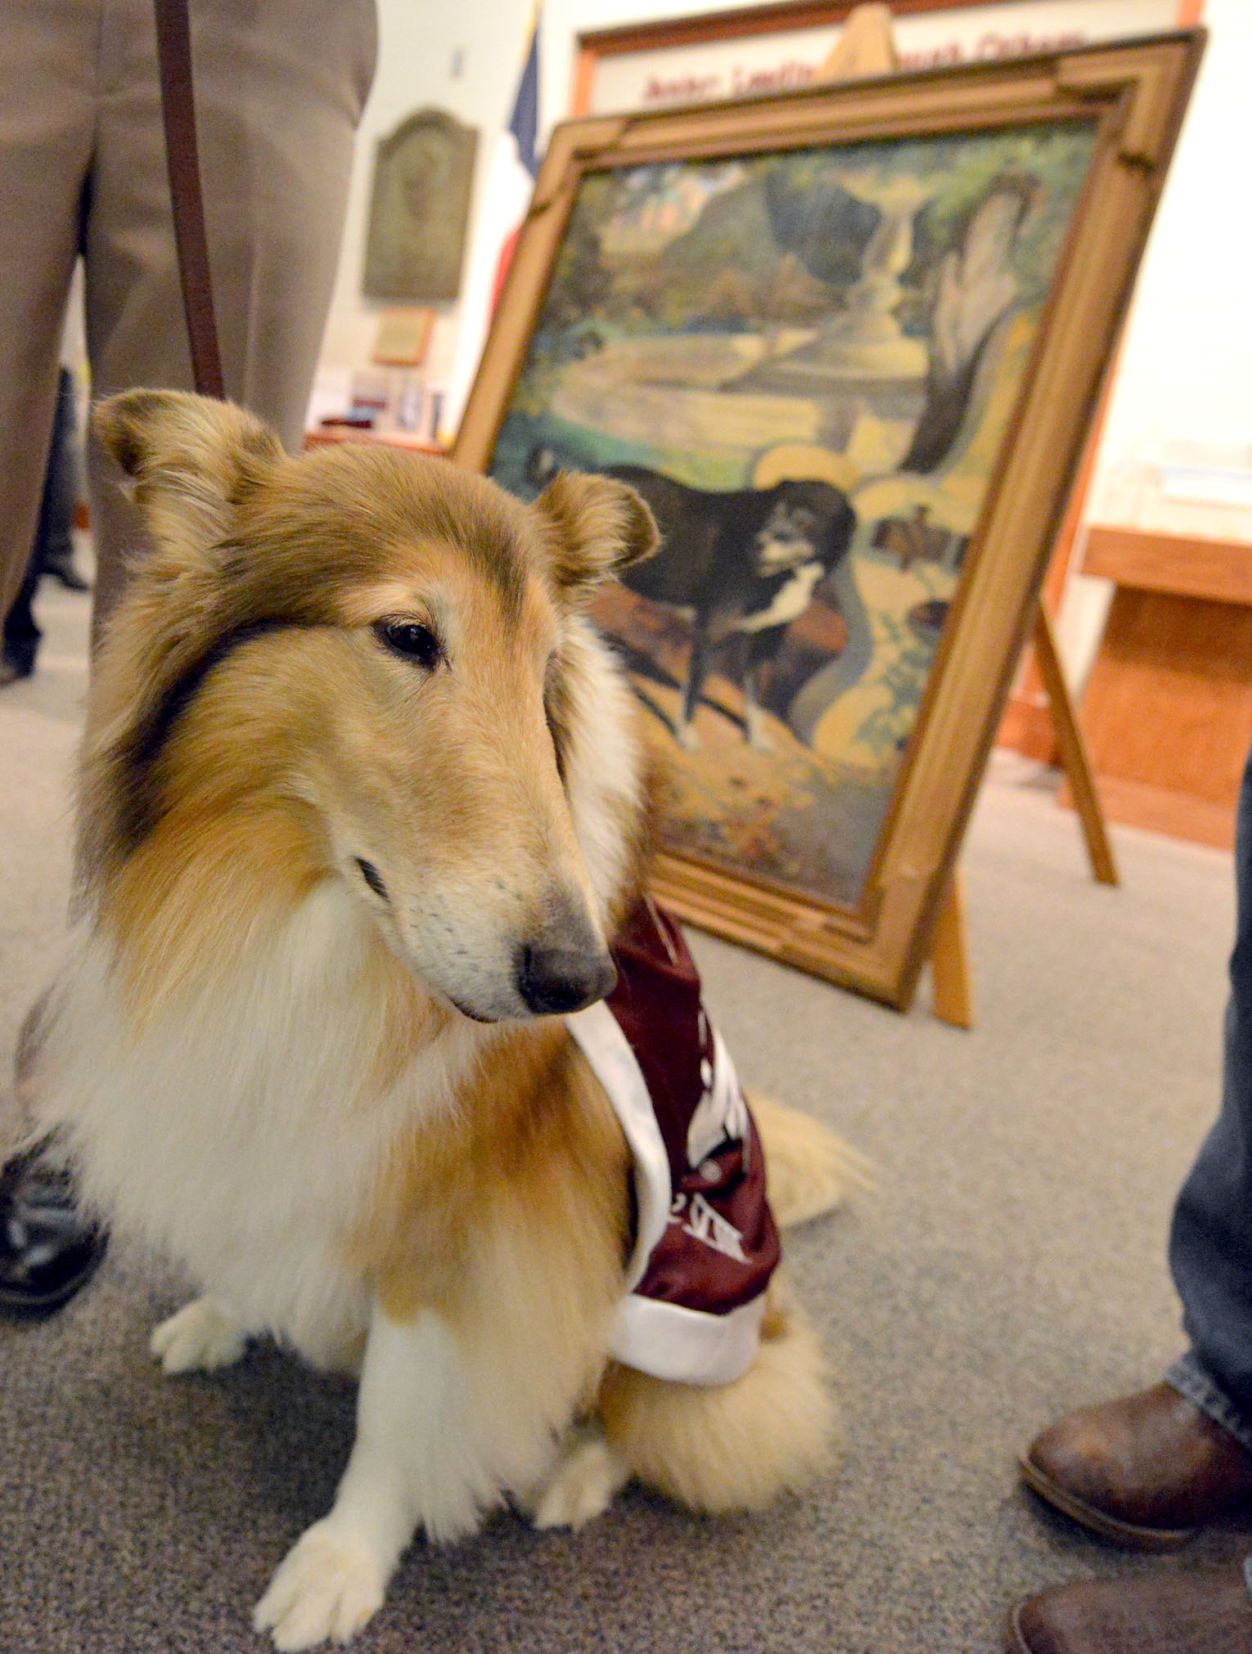 Reveill Texas A M Welcomes Back Reveille I Painting With Re Unveiling